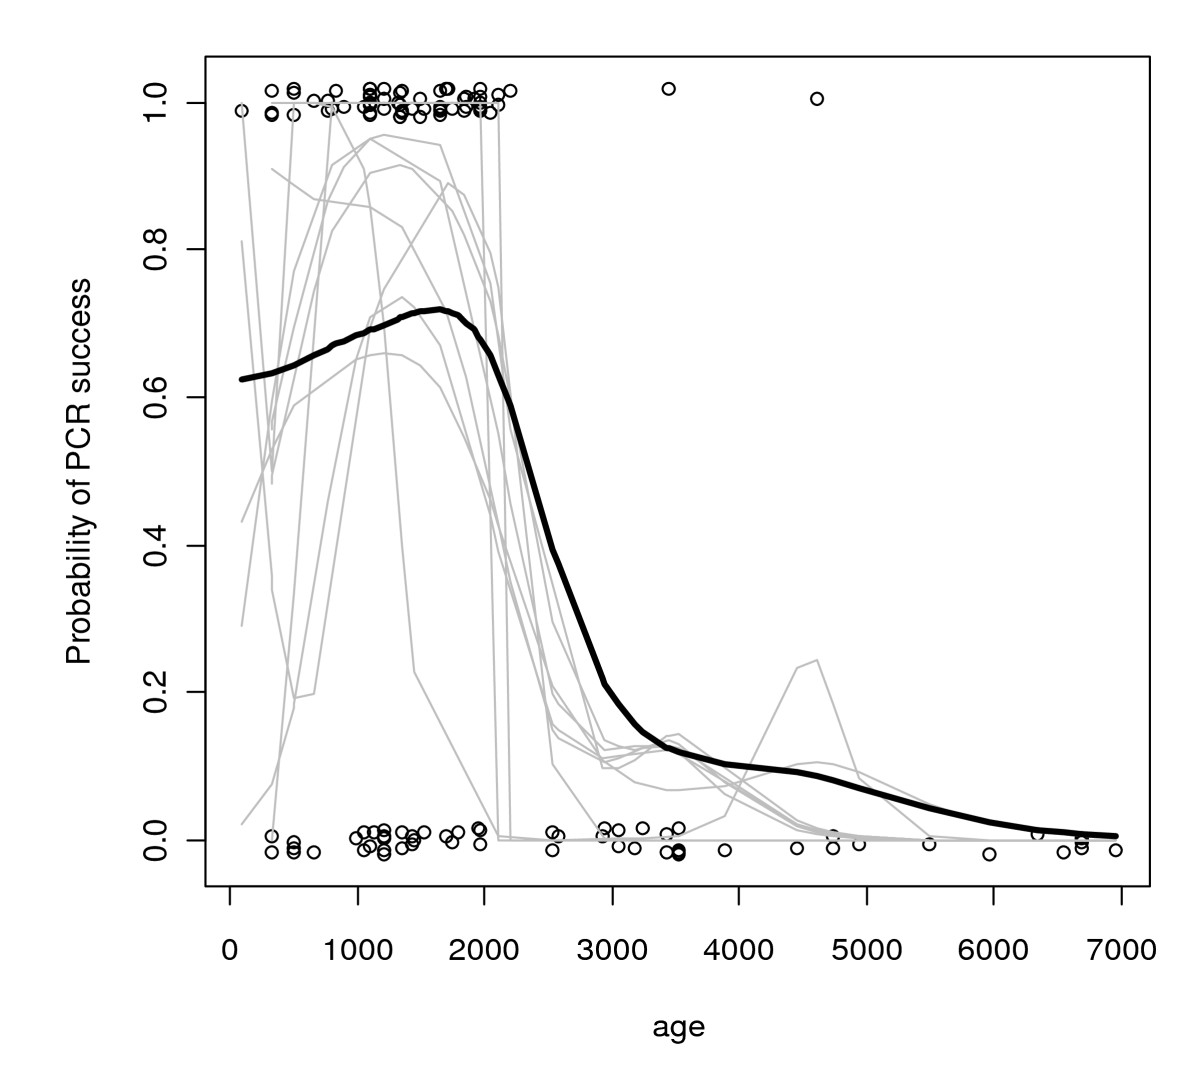 https://static-content.springer.com/image/art%3A10.1186%2F1471-2148-11-30/MediaObjects/12862_2010_Article_1996_Fig3_HTML.jpg